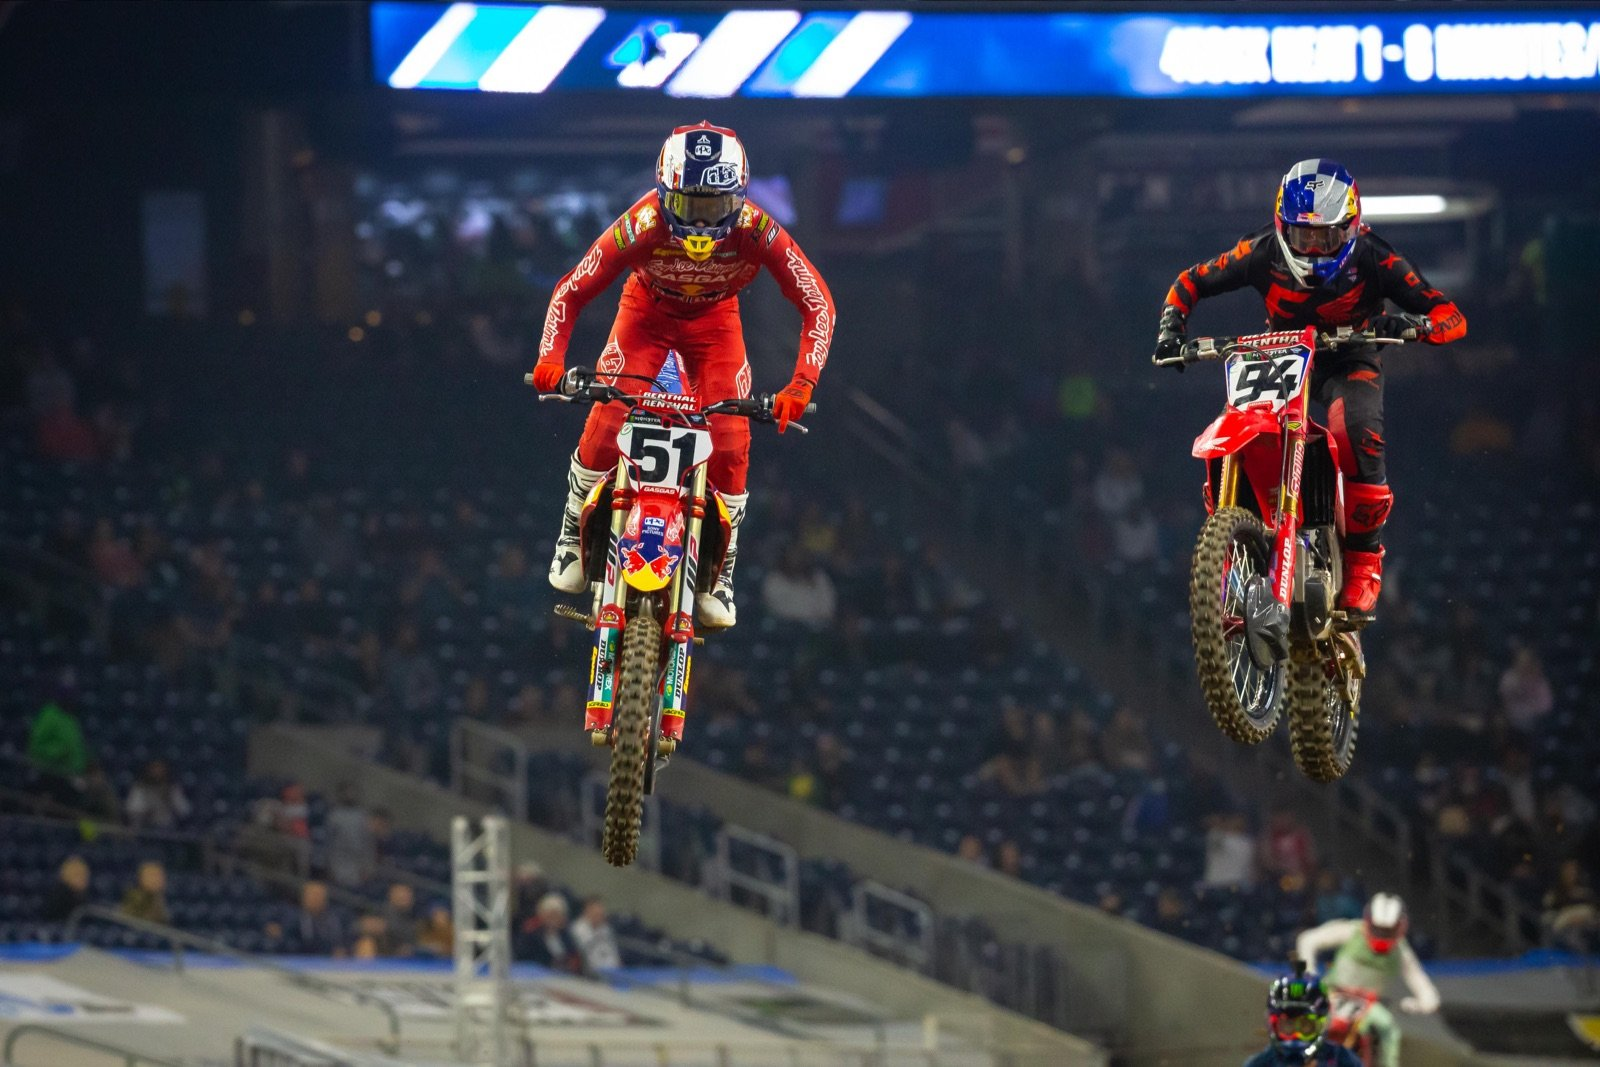 Ken Roczen (#94) battled closely with Justin Barcia (#51) in the 2021 opener at Houston, with Barcia claiming the victory. Photo courtesy of Feld Entertainment, Inc.